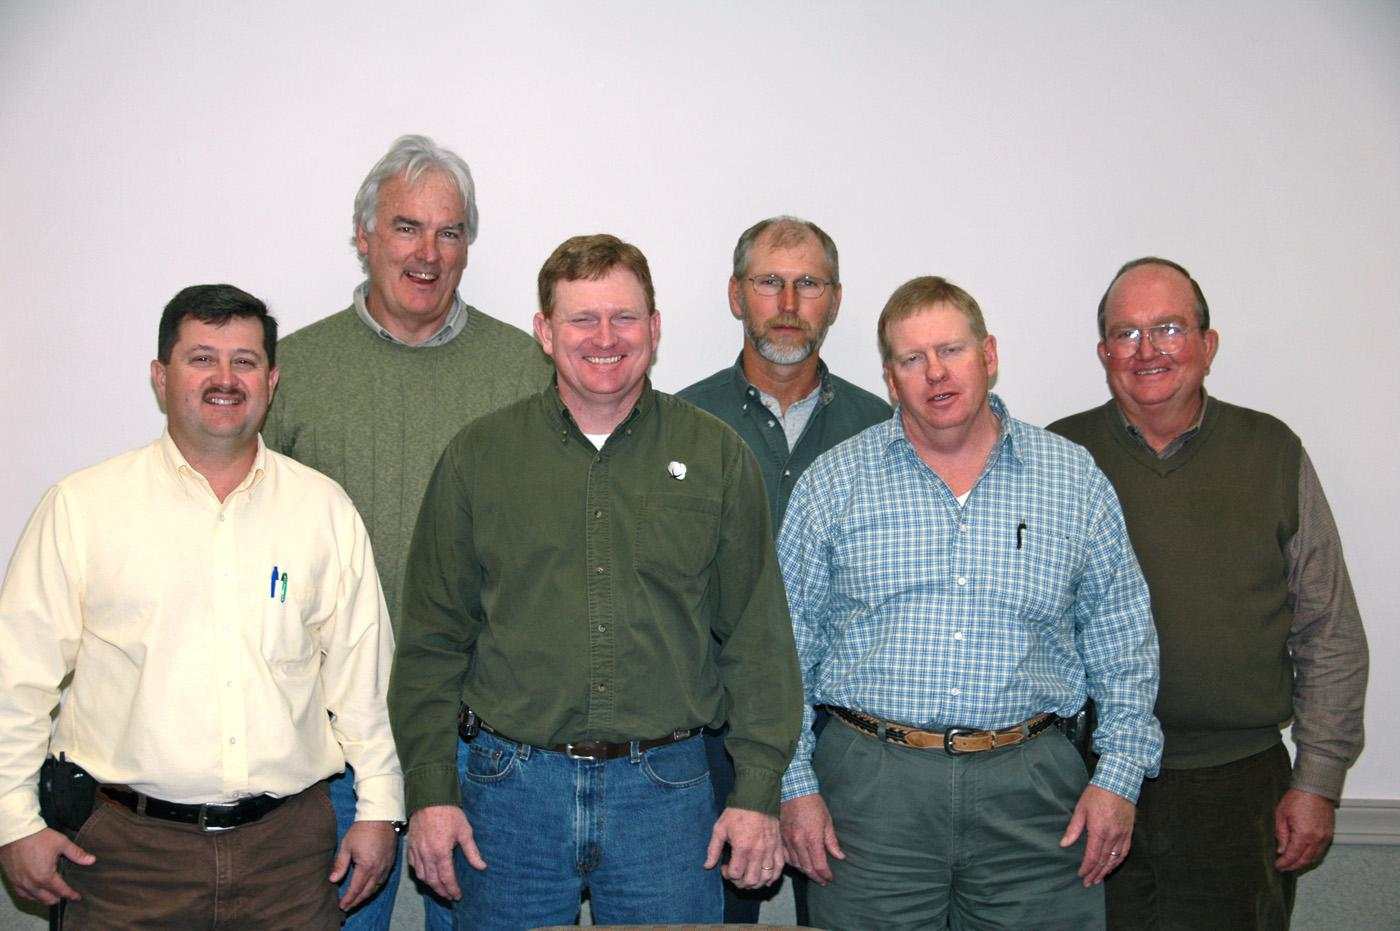 Mississippi Peanut Growers Association officers were elected at the organization's annual meeting. Elected for 2008 were, left to right, front row, Mike Steede, secretary, George County; Lonnie Fortner, vice president, Claiborne County; Clayton Lawrence, president, George County; back row, Joc Carpenter, Claiborne County; Van Hensarling, treasurer, Perry County; and Joe Morgan, Forrest County.